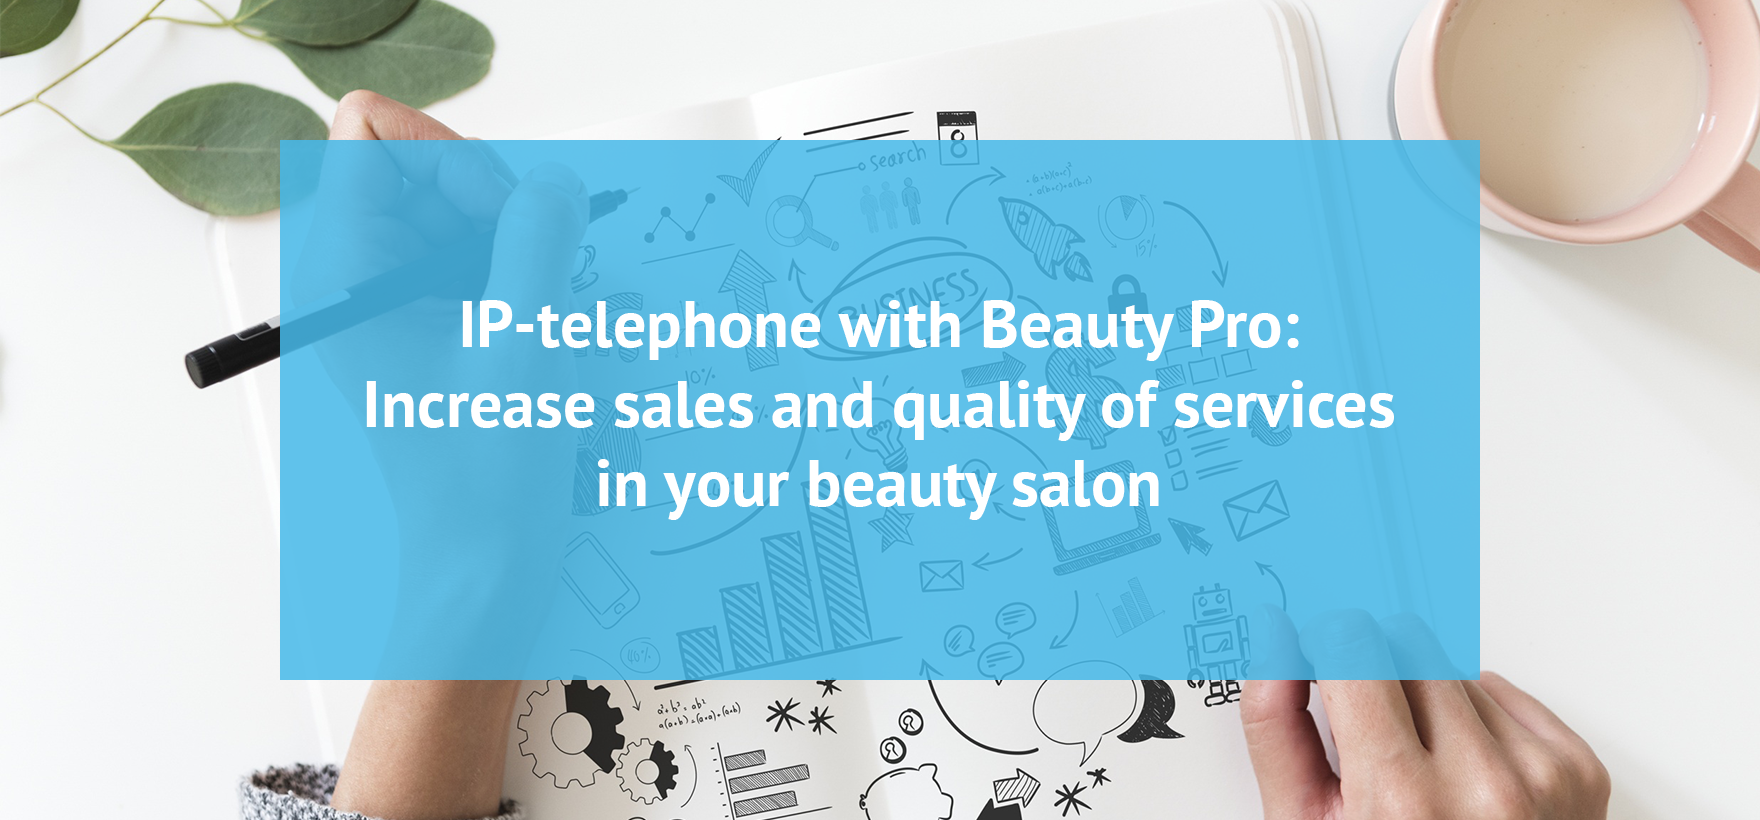 IP-Telephony with Beauty Pro: Increase Sales and Quality of Services in Your Beauty Salon